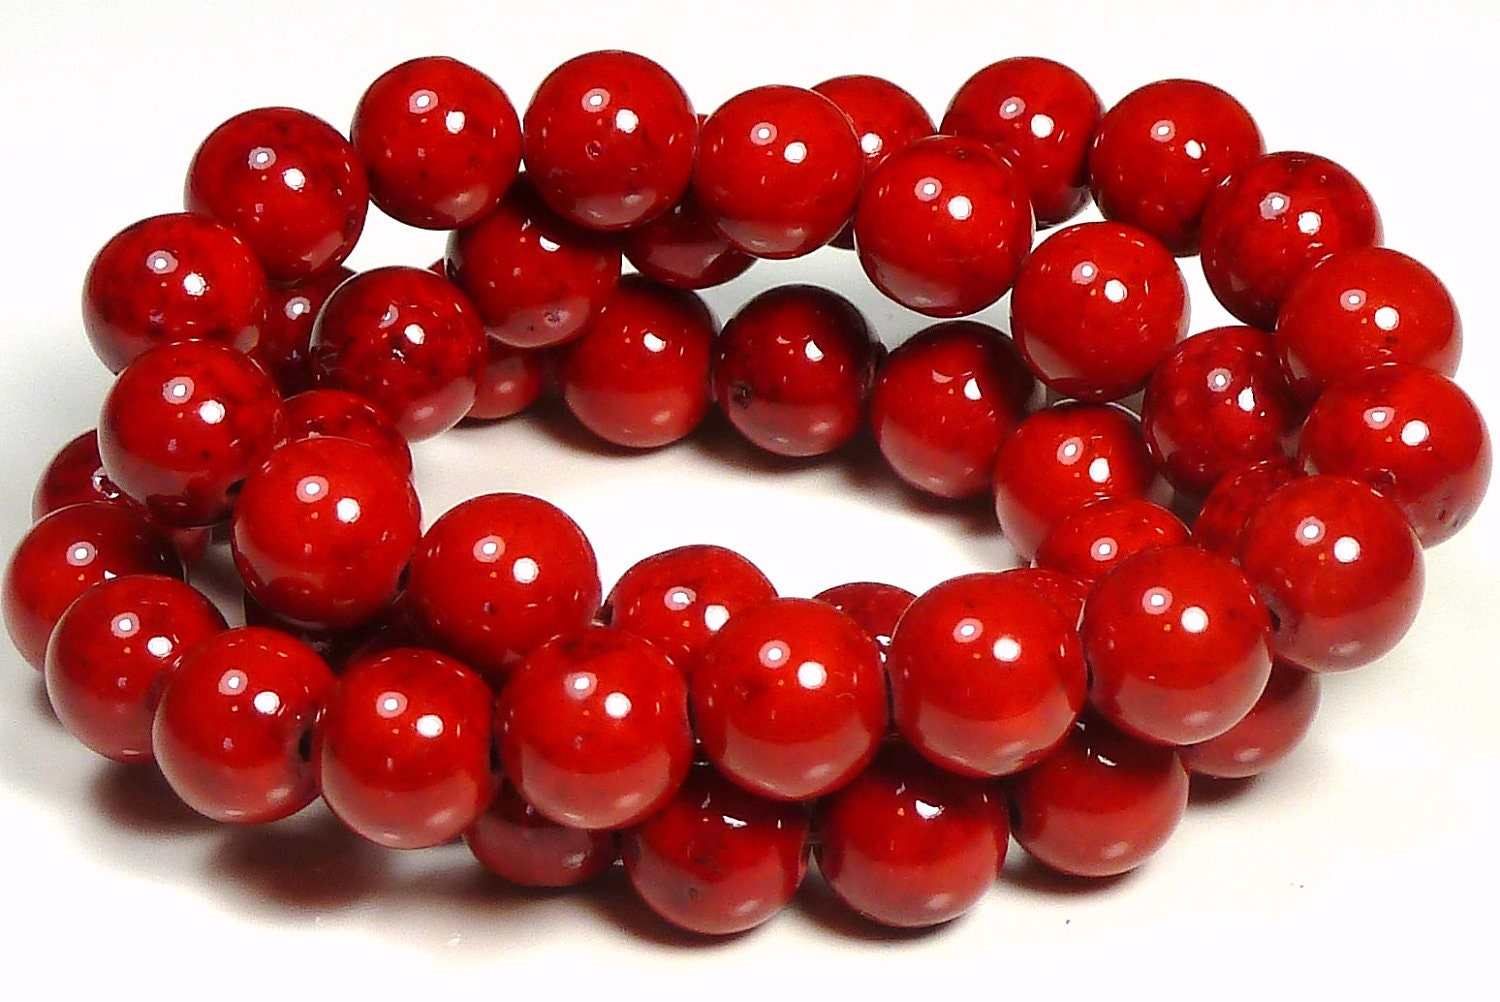 10mm Cherry Red Fossil Stone Round Beads 16 Inch Strand. Soldered Rings. Exercise Rings. 22 Carat Diamond. Colorful Wedding Rings. Handmade Silver Bracelet. Birth Stone Bracelet. Mens White Gold Band. Cellular Watches